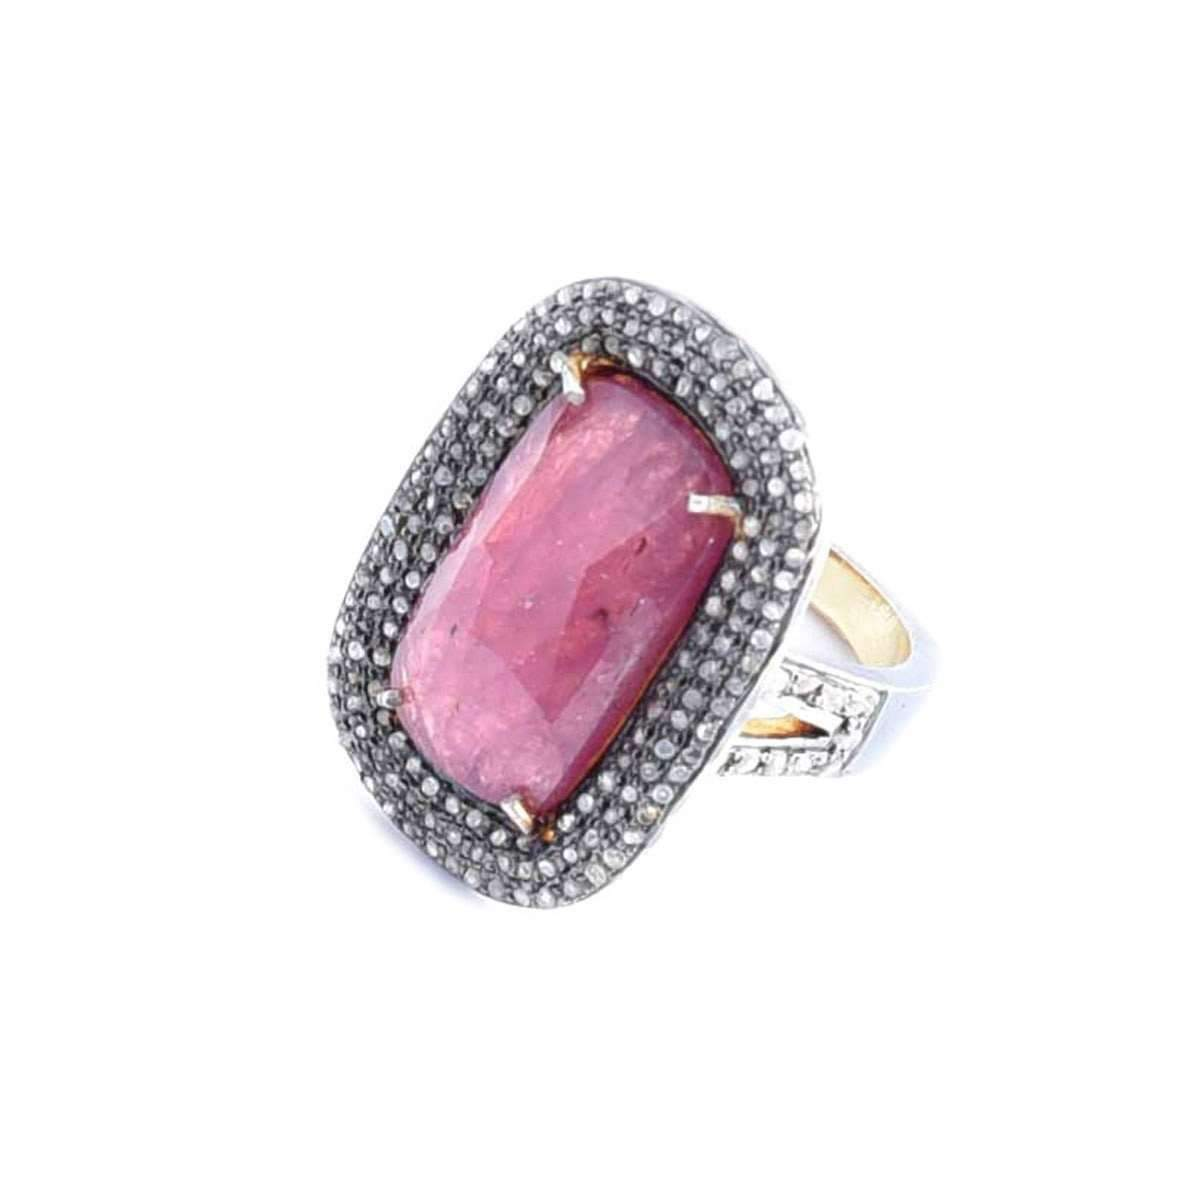 Drop Dead Red Multi Sapphire Ring with Diamonds-M's Gems by Mamta Valrani-JewelStreet US